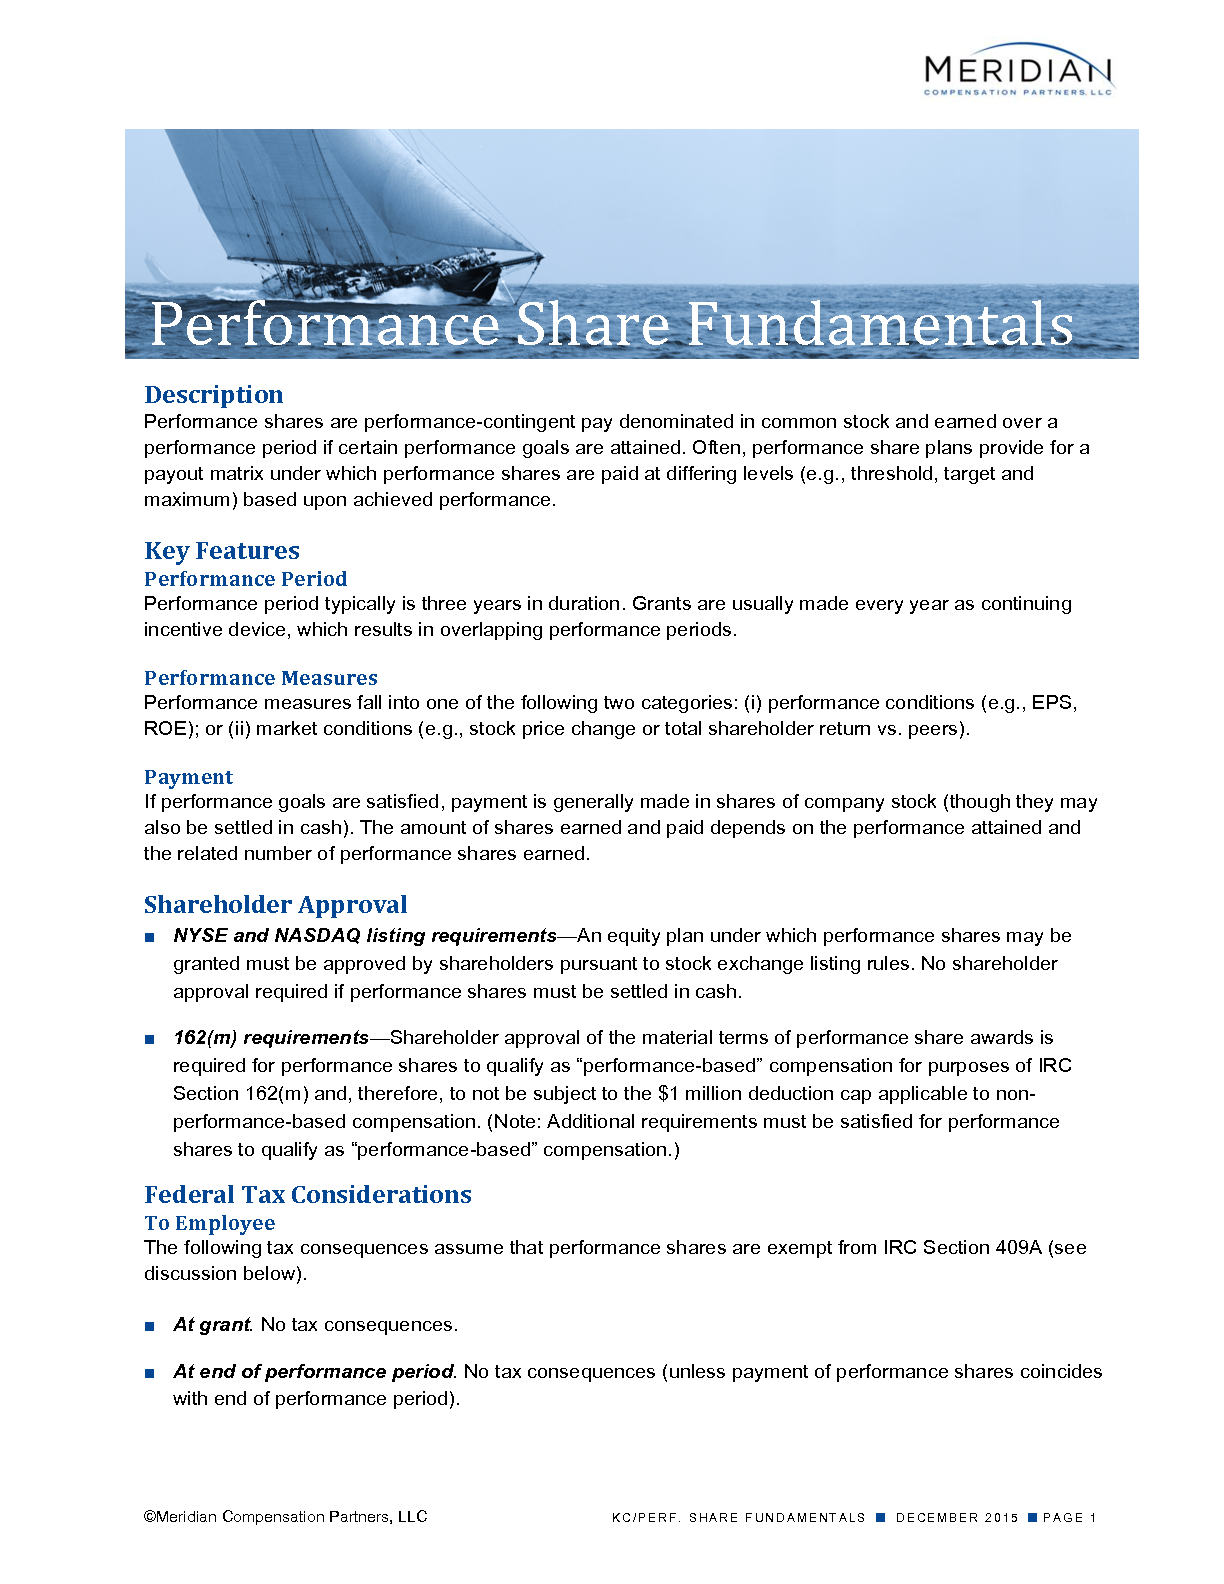 Performance Share Fundamentals (PDF)